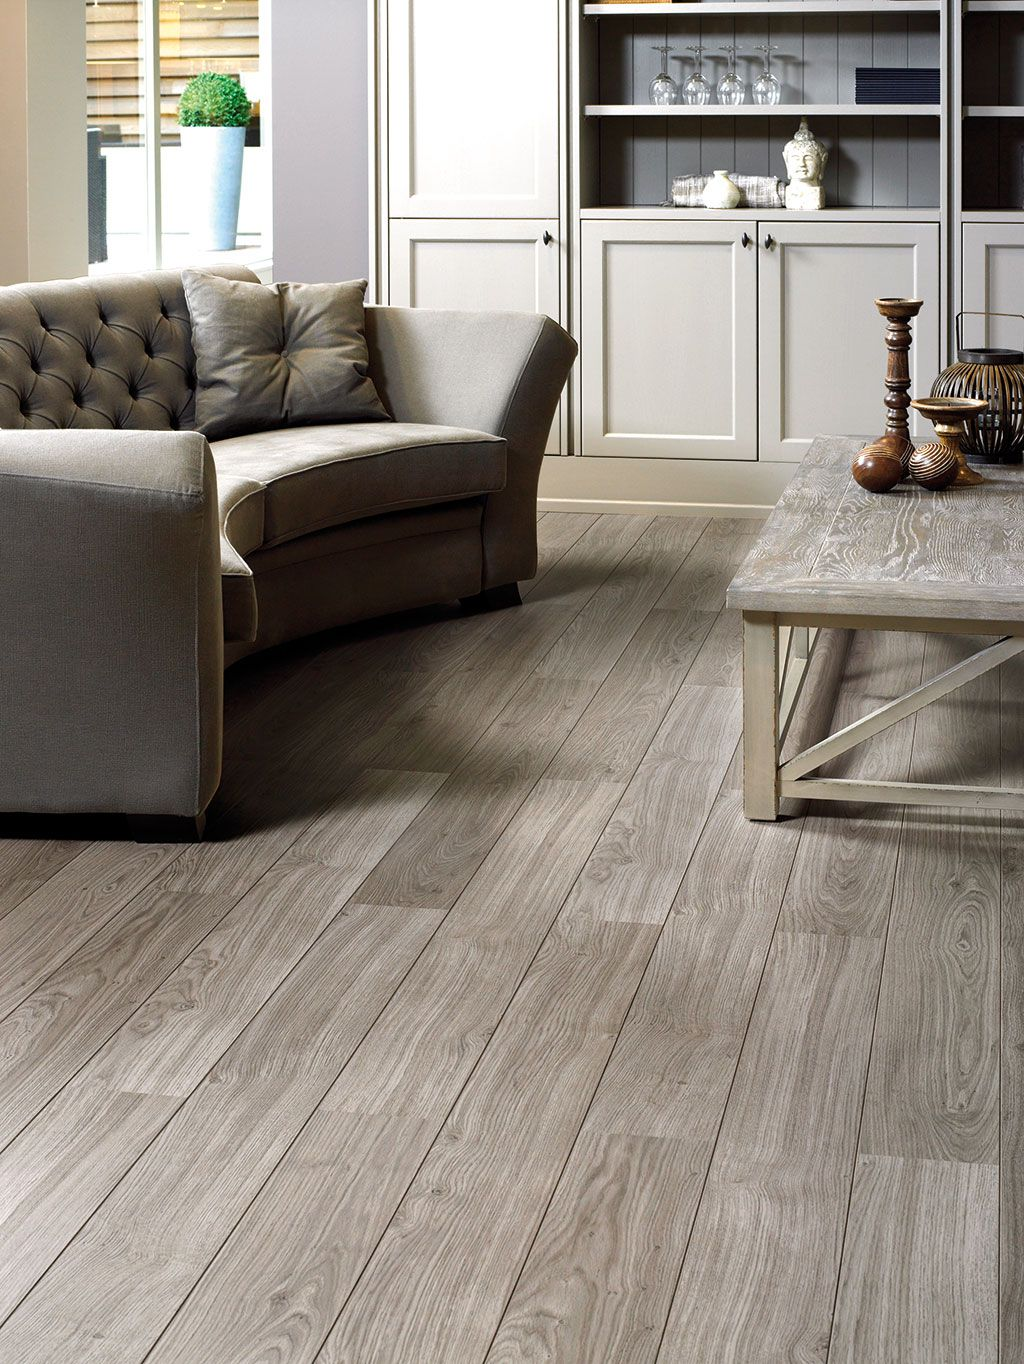 Related image Grey laminate flooring living room, Grey